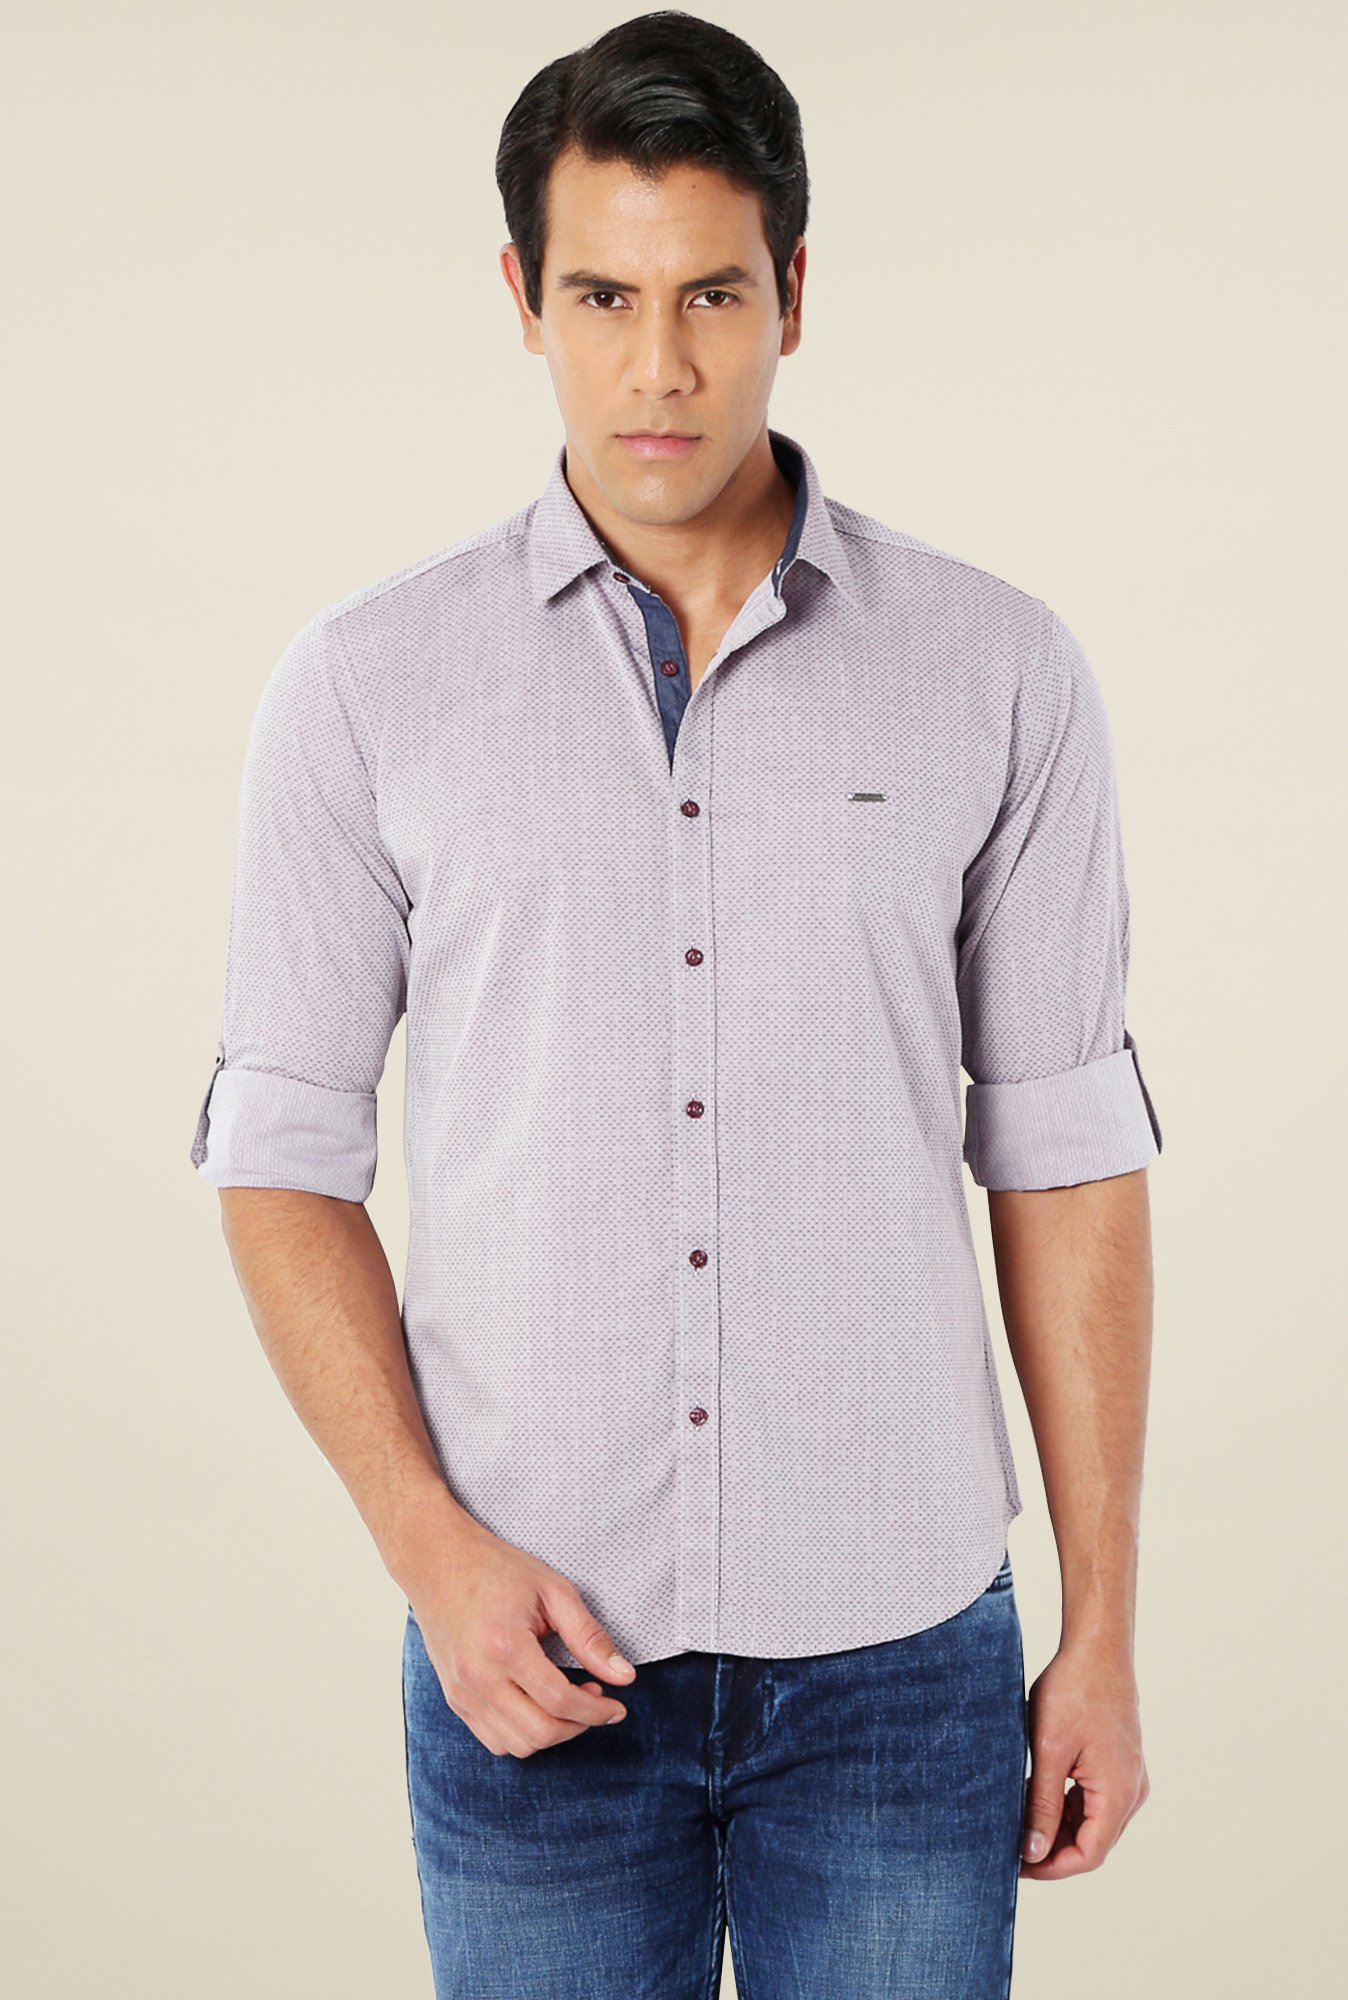 Van Heusen Grey Full Sleeves Cotton Printed Shirt